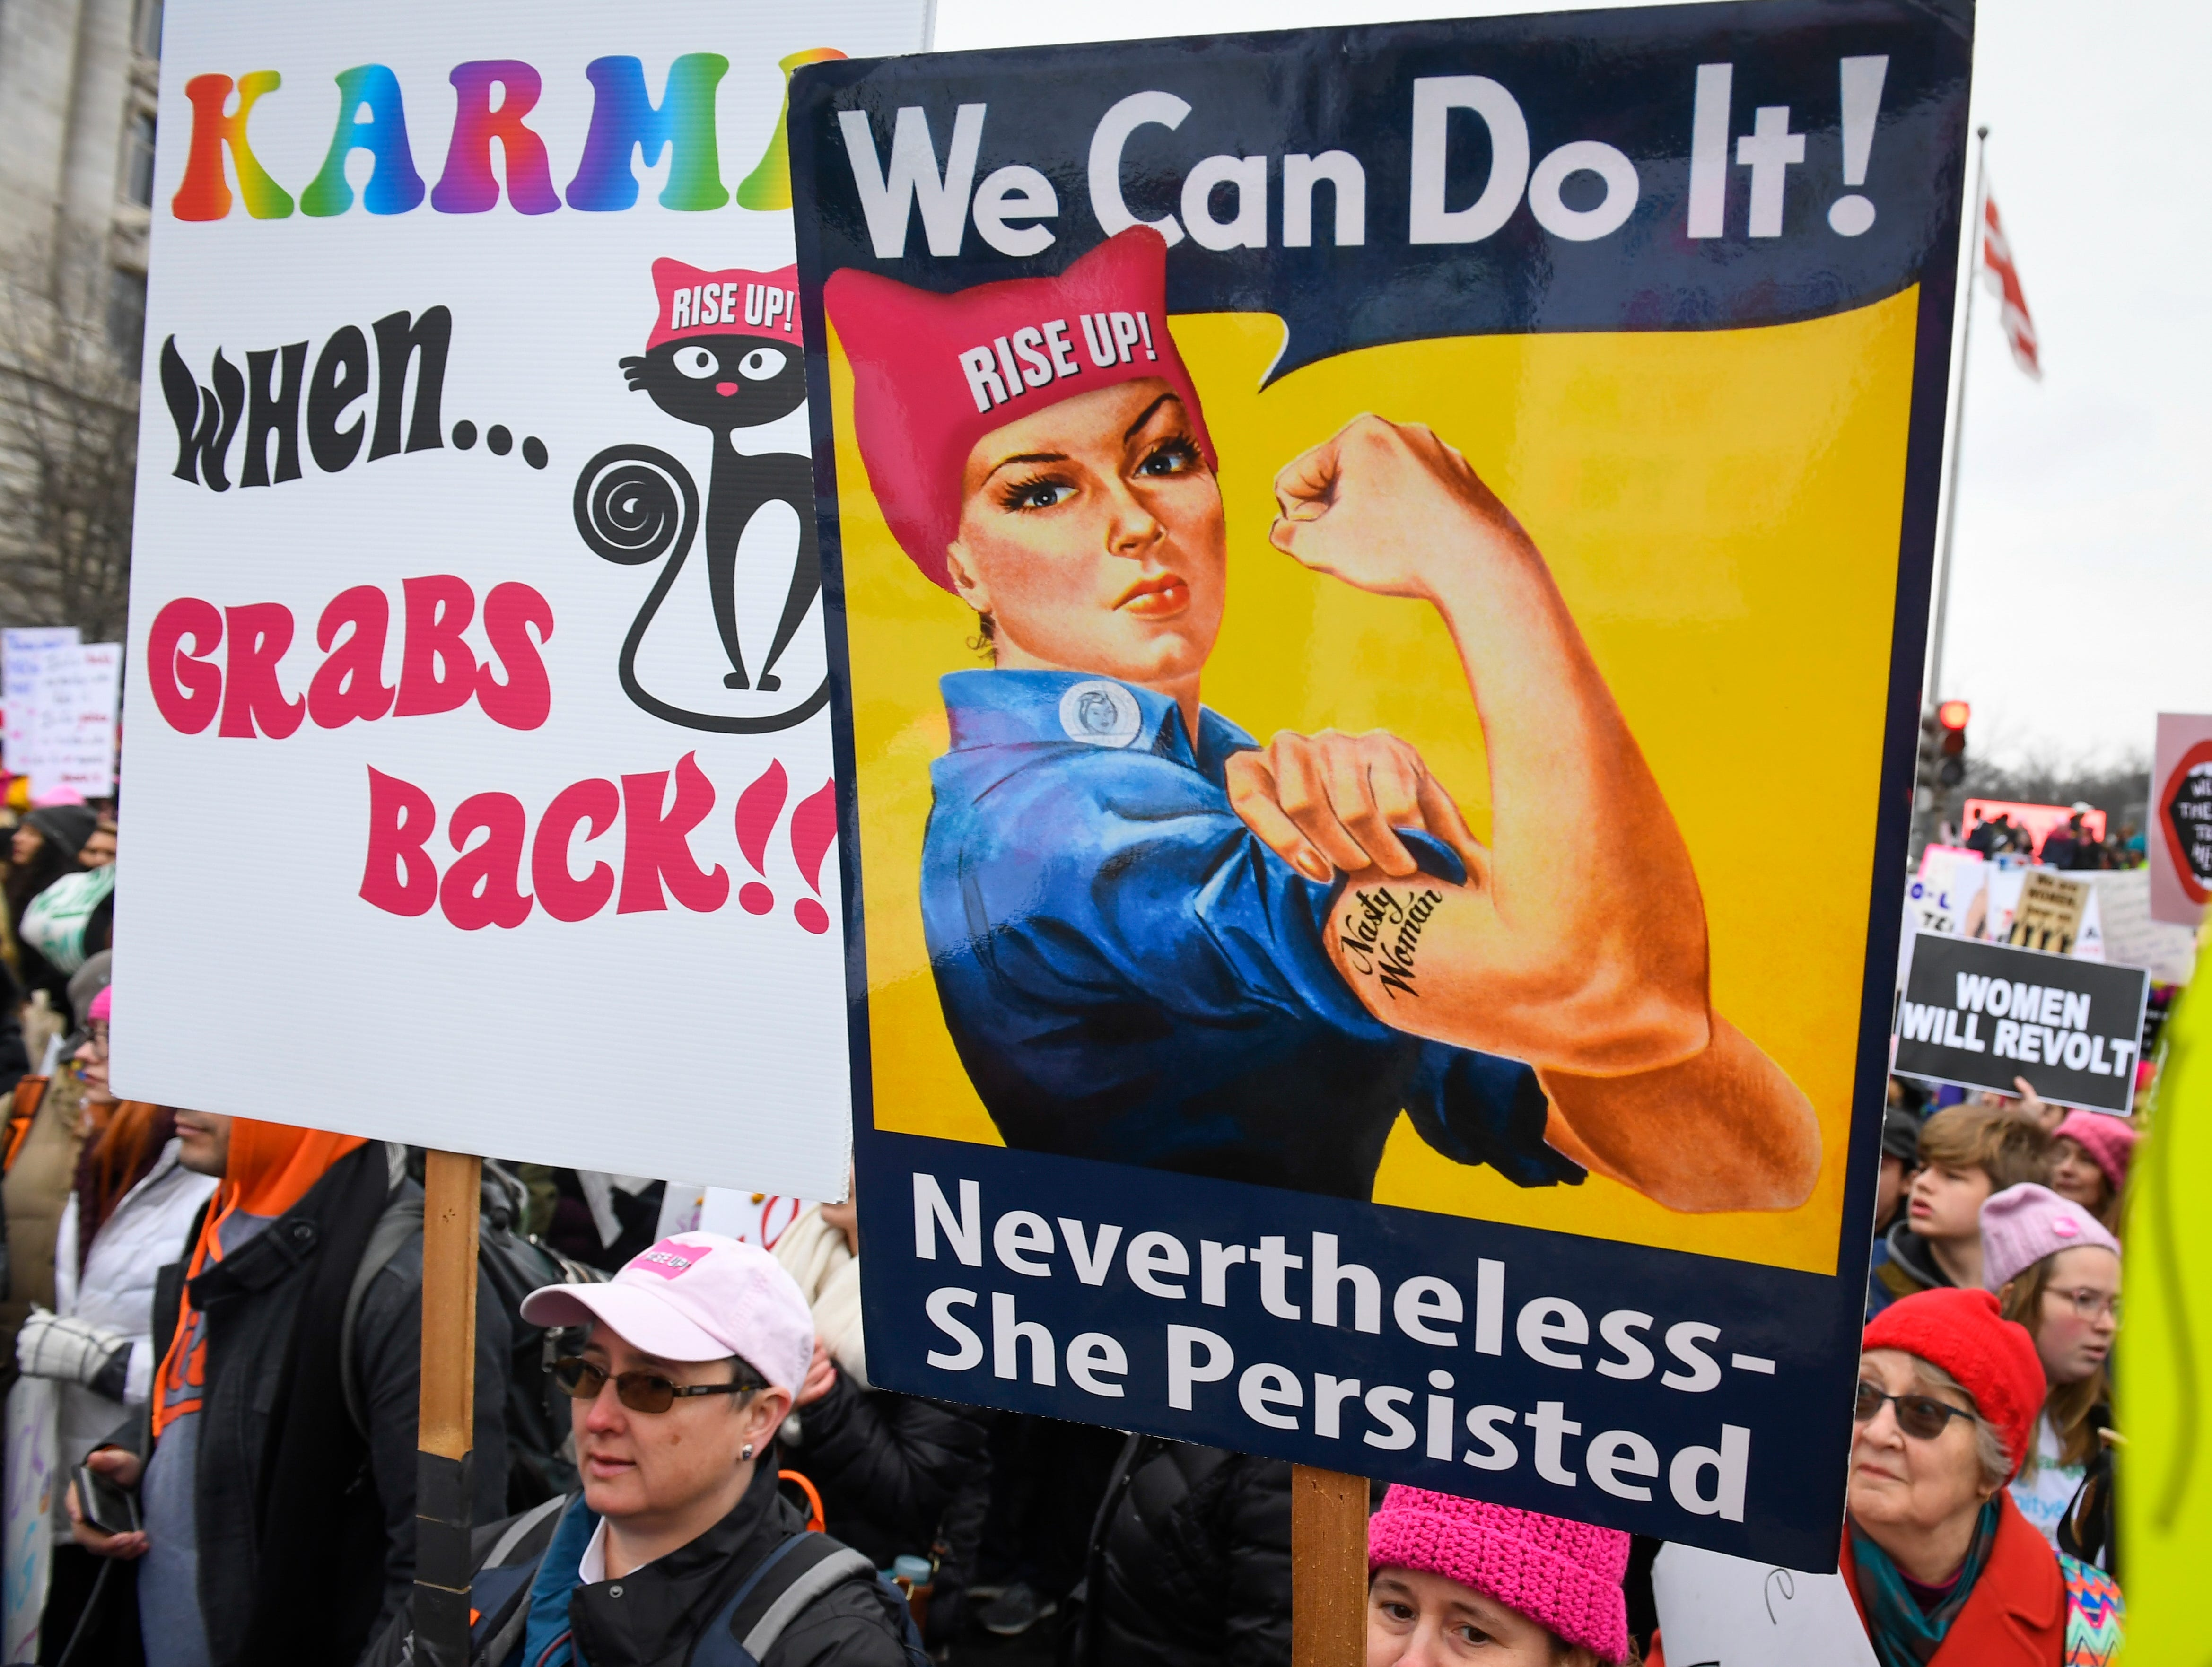 Marchers gather for the 2019 Women's March on Jan. 19, 2019 in Washington.